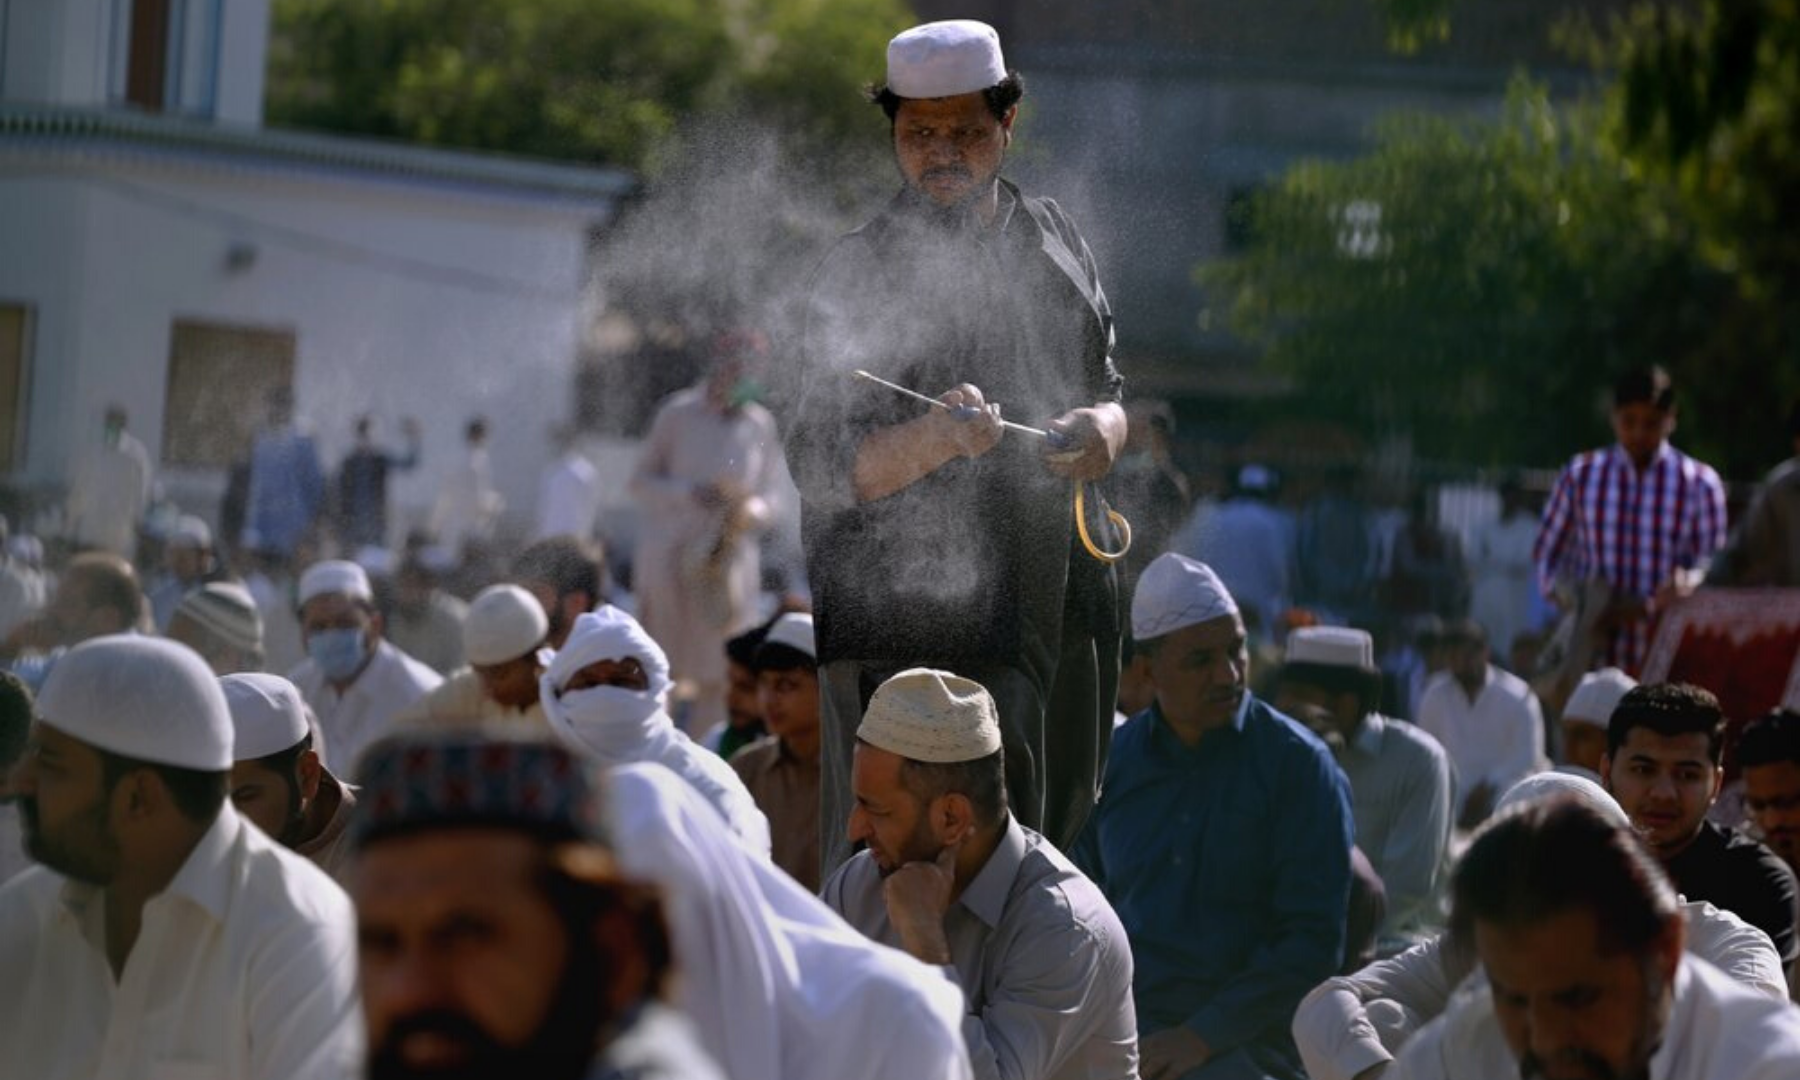 A worker sprays disinfectant among worshippers attending the Eidul Fitr prayer at a ground in Rawalpindi. The 20-point agenda agreed between the government and the ulema for congregational prayers included the disinfection of mosques. — AP